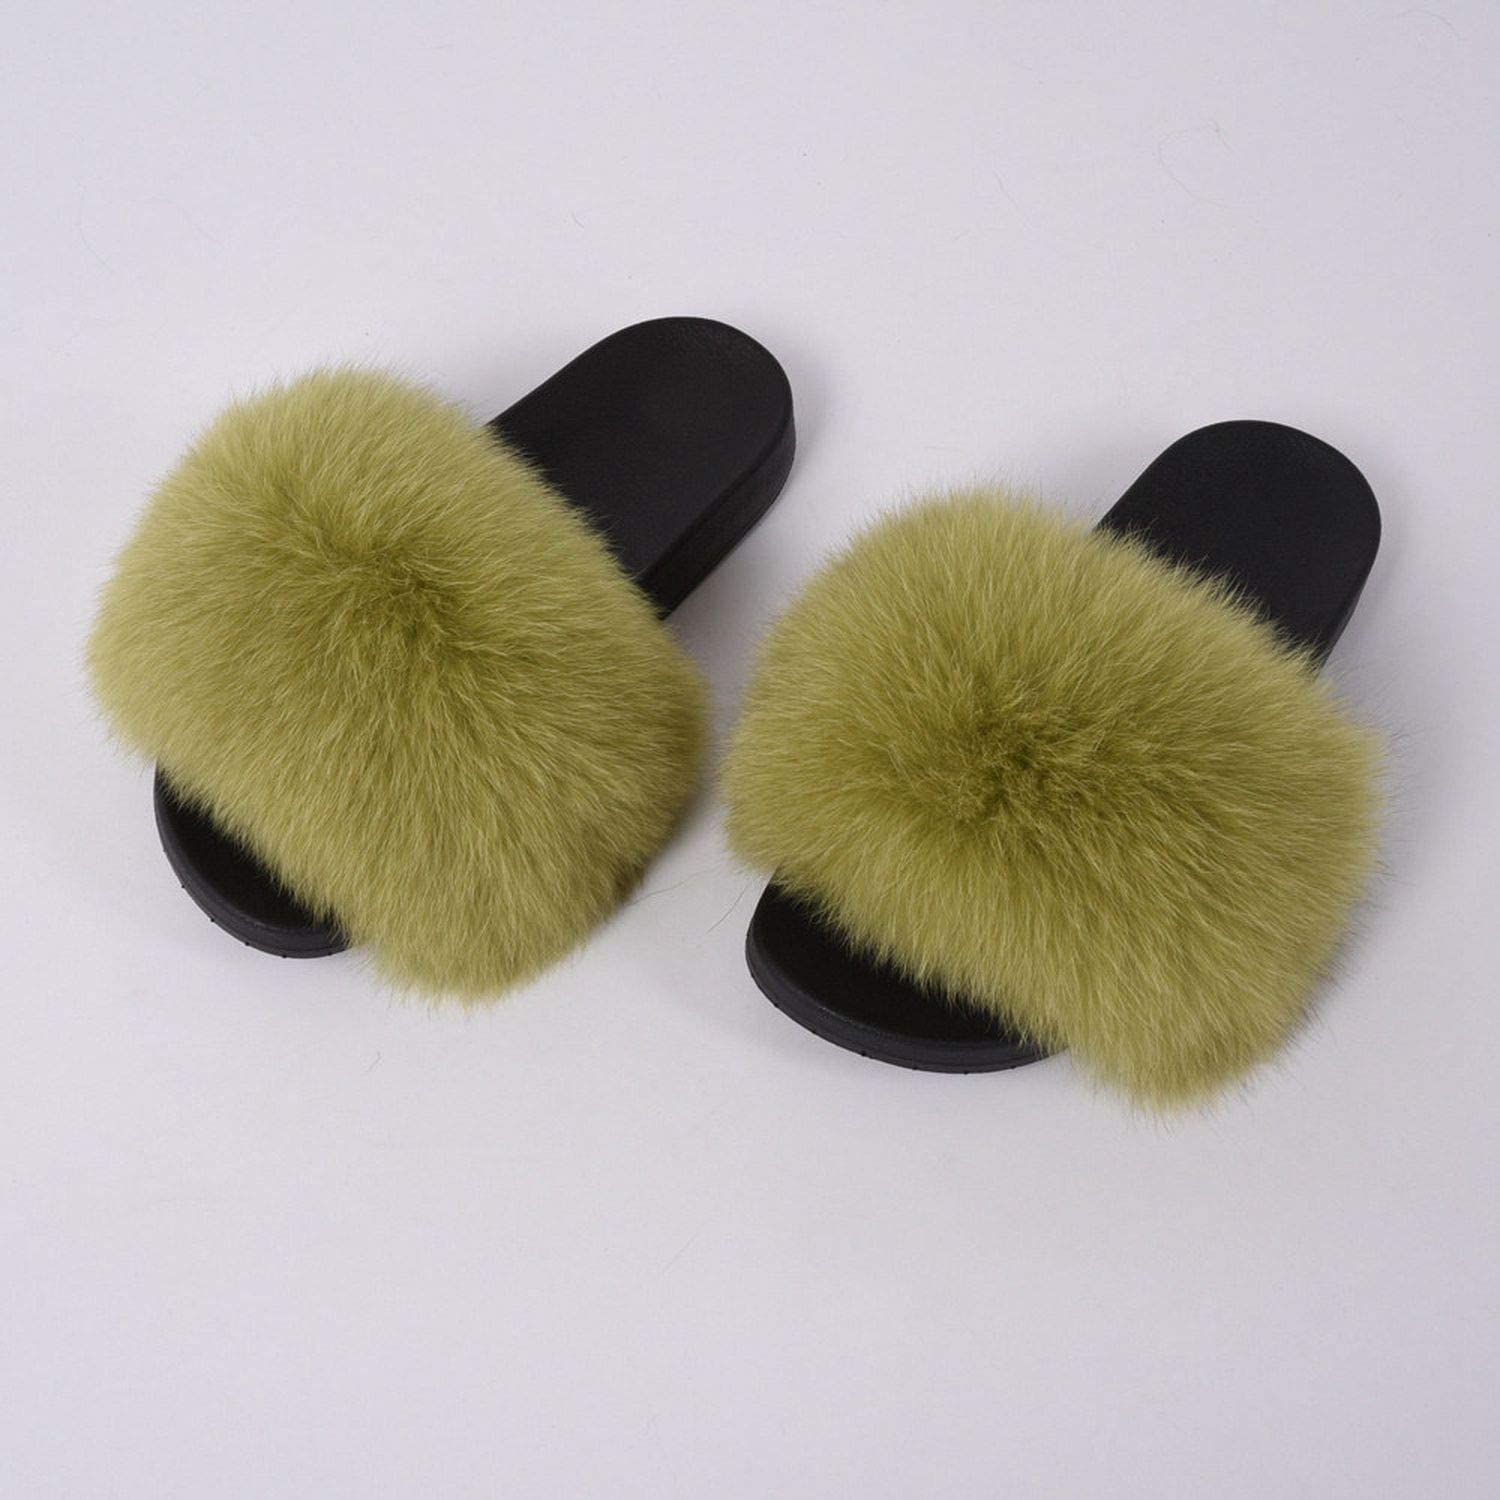 Blingbling-honored High end Real Fox Fur Slipper Women Slides Sliders Fashion Spring Summer Autumn Fluffy Fur Lady S6018